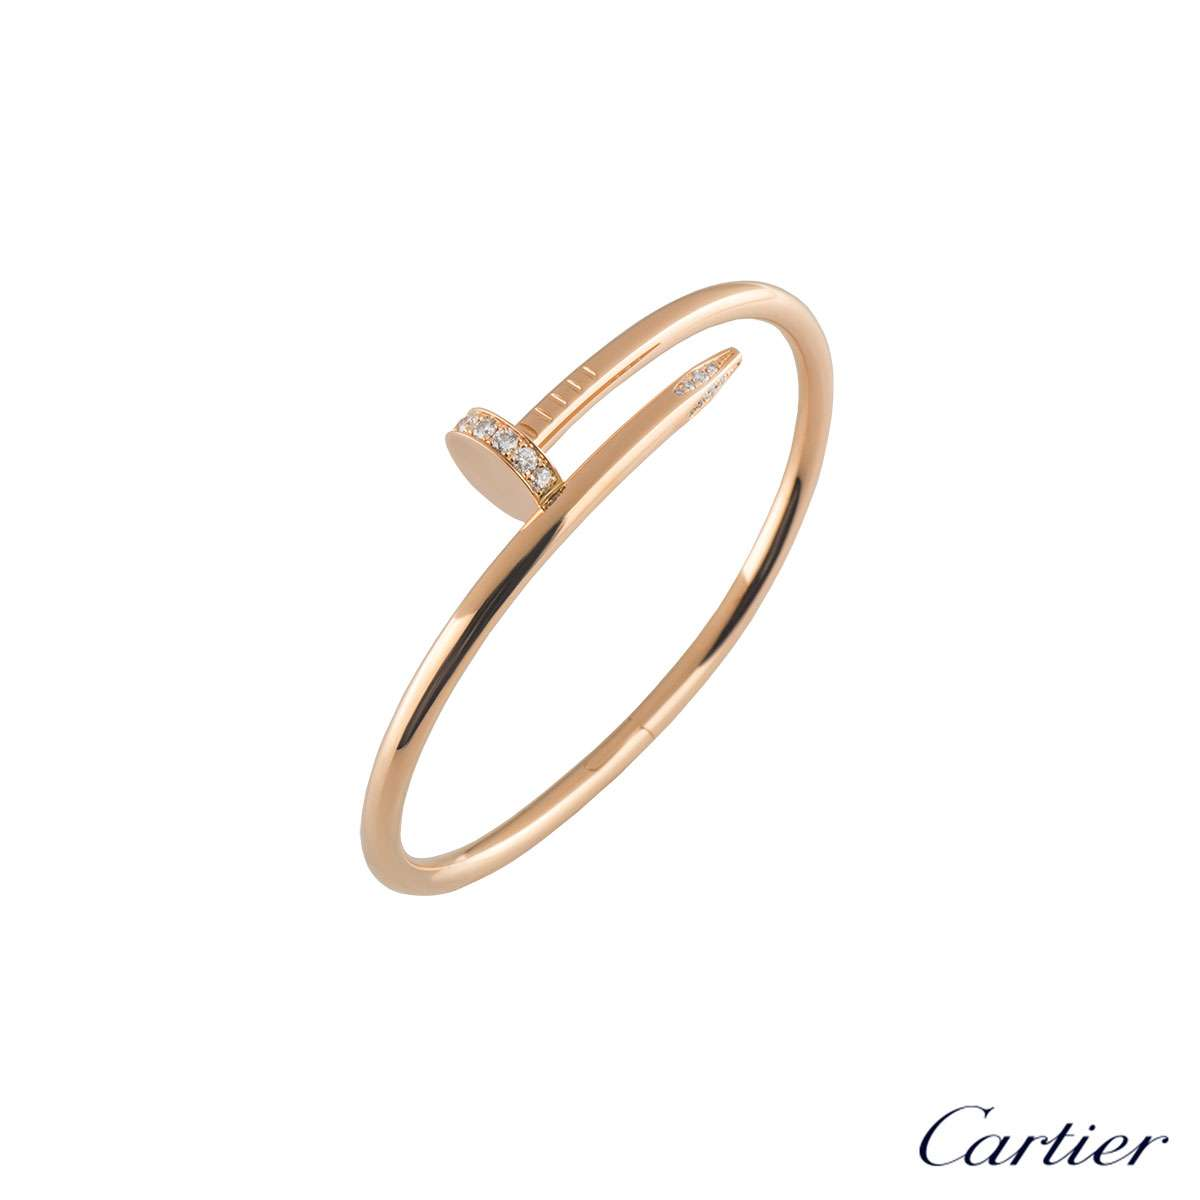 Cartier Rose Gold Diamond Juste Un Clou Bracelet Size 17 B6048517